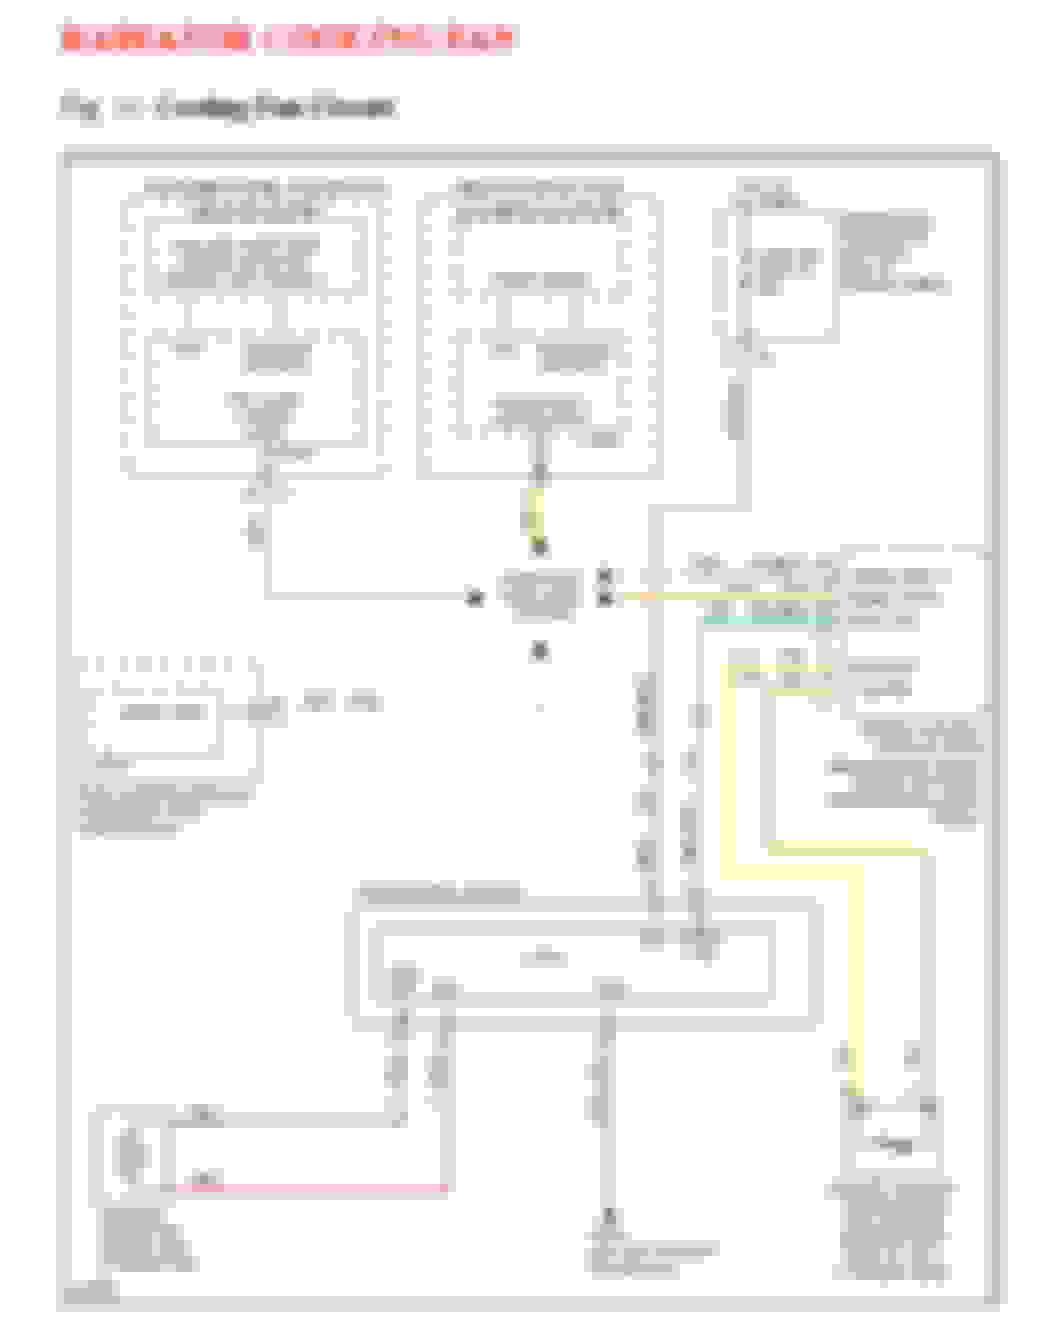 Gm Cooling Fan Wiring Diagram Answer To Circuit Fuse Box Schematic For 2007 Z06 U2022 Rh Friendsoffido Co 2 Speed Furnace